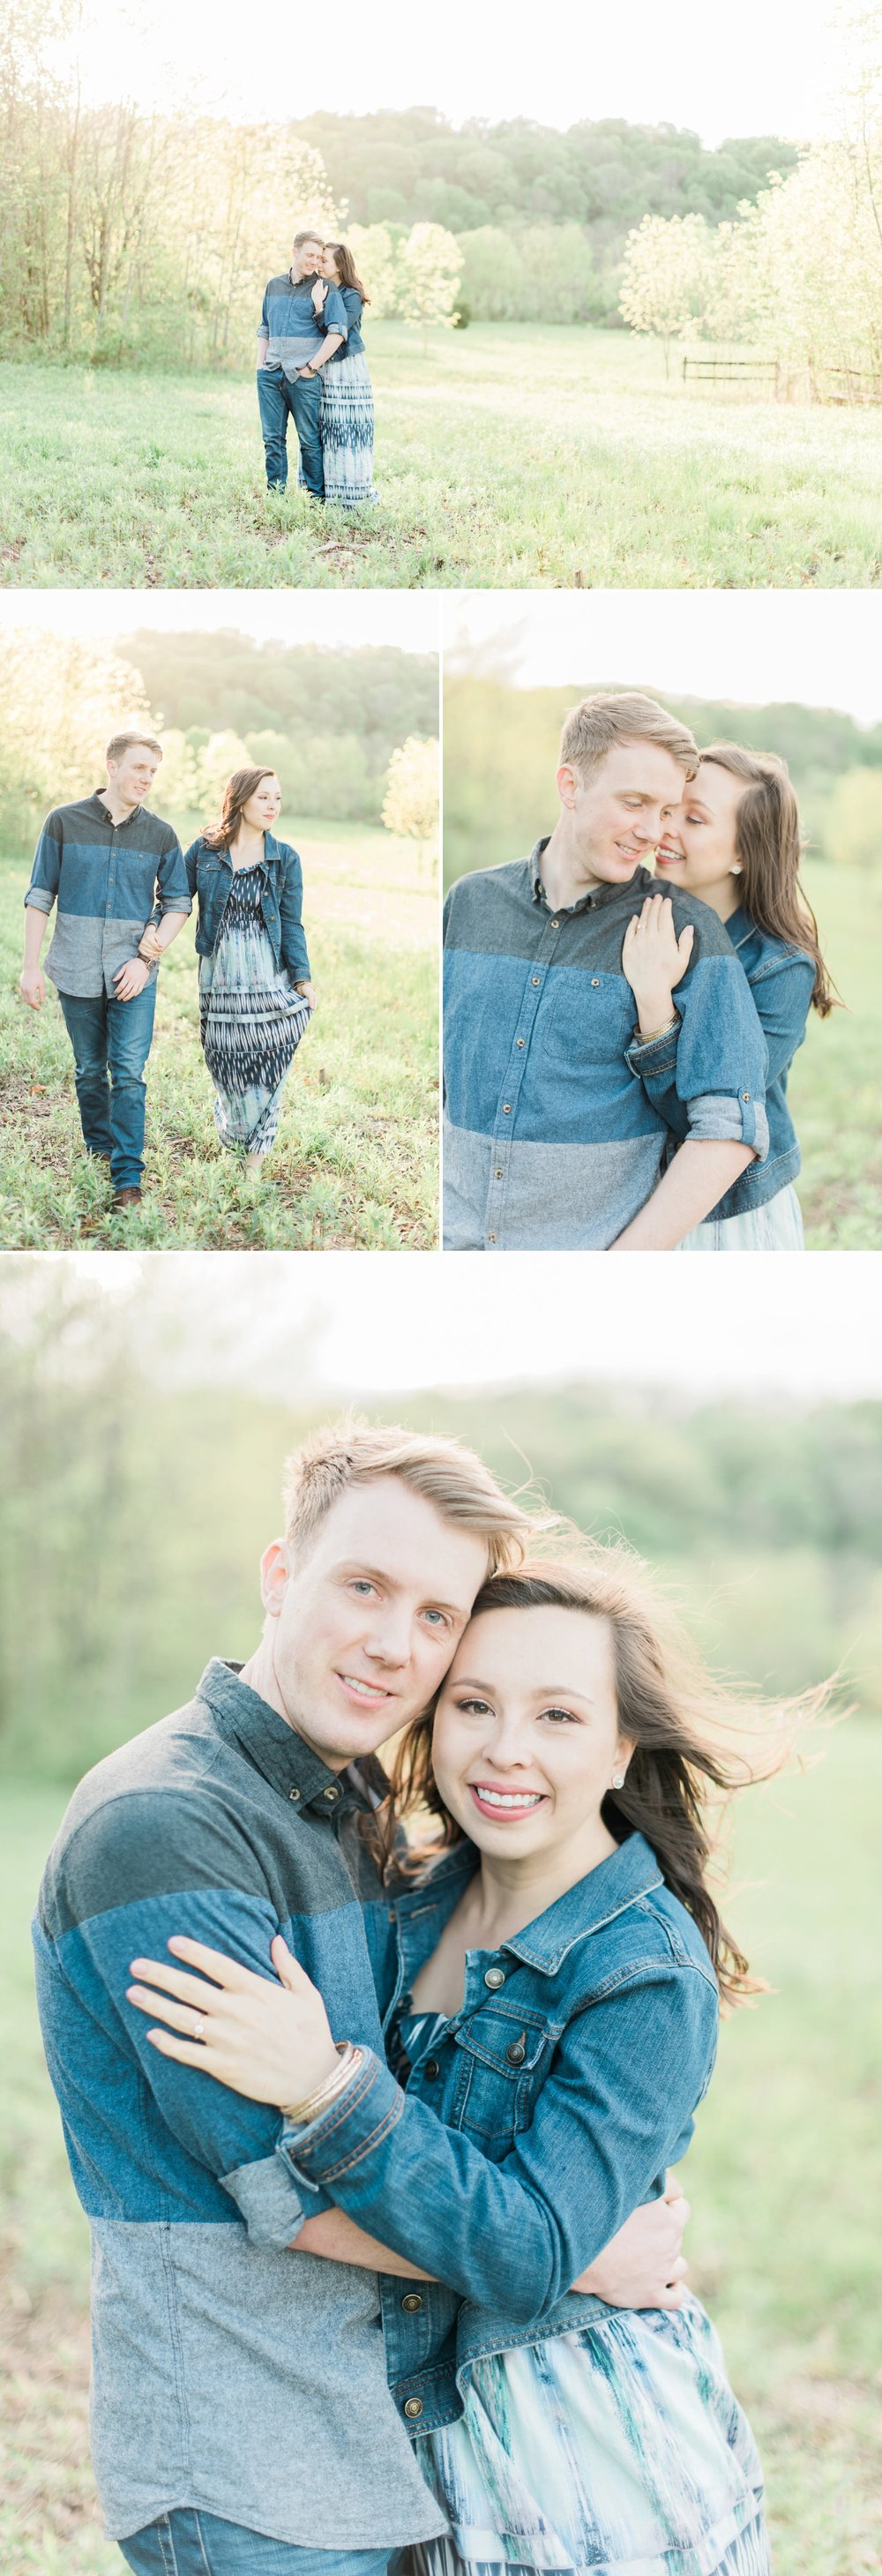 chestnut-ridge-metro-park-engagement-carroll-ohio-34.jpg